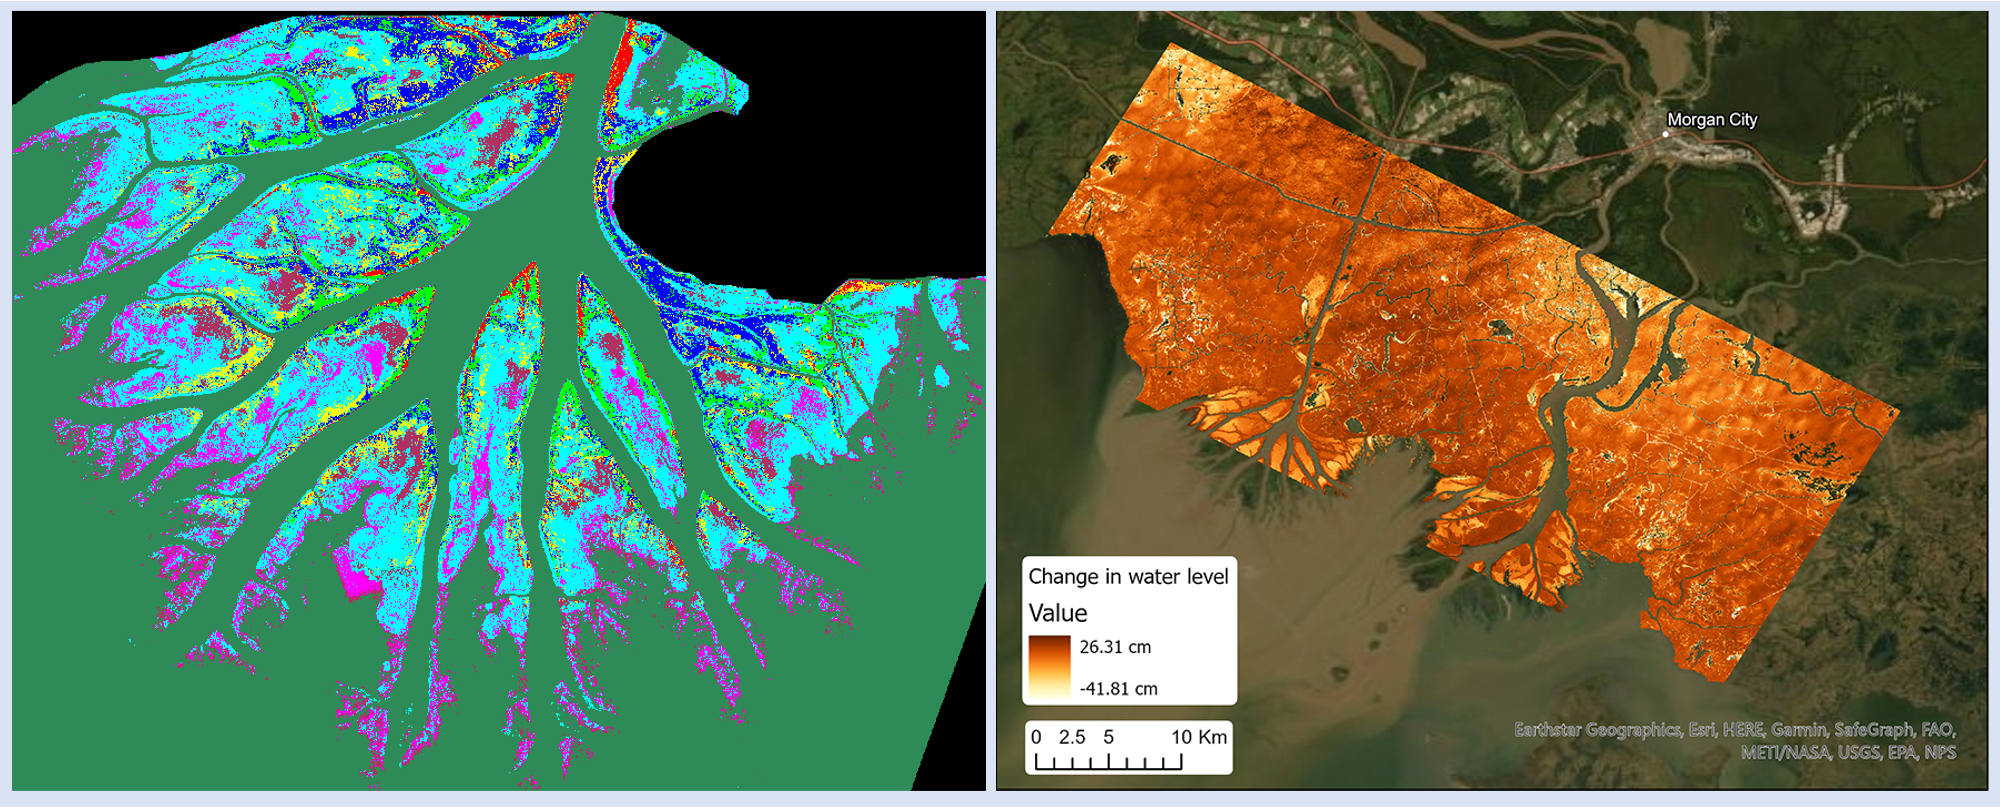 Left image: Vegetation classification of the Atchafalaya Basin, LA, Right image: Map of water level changes based on water surface elevations measured by UAVSAR